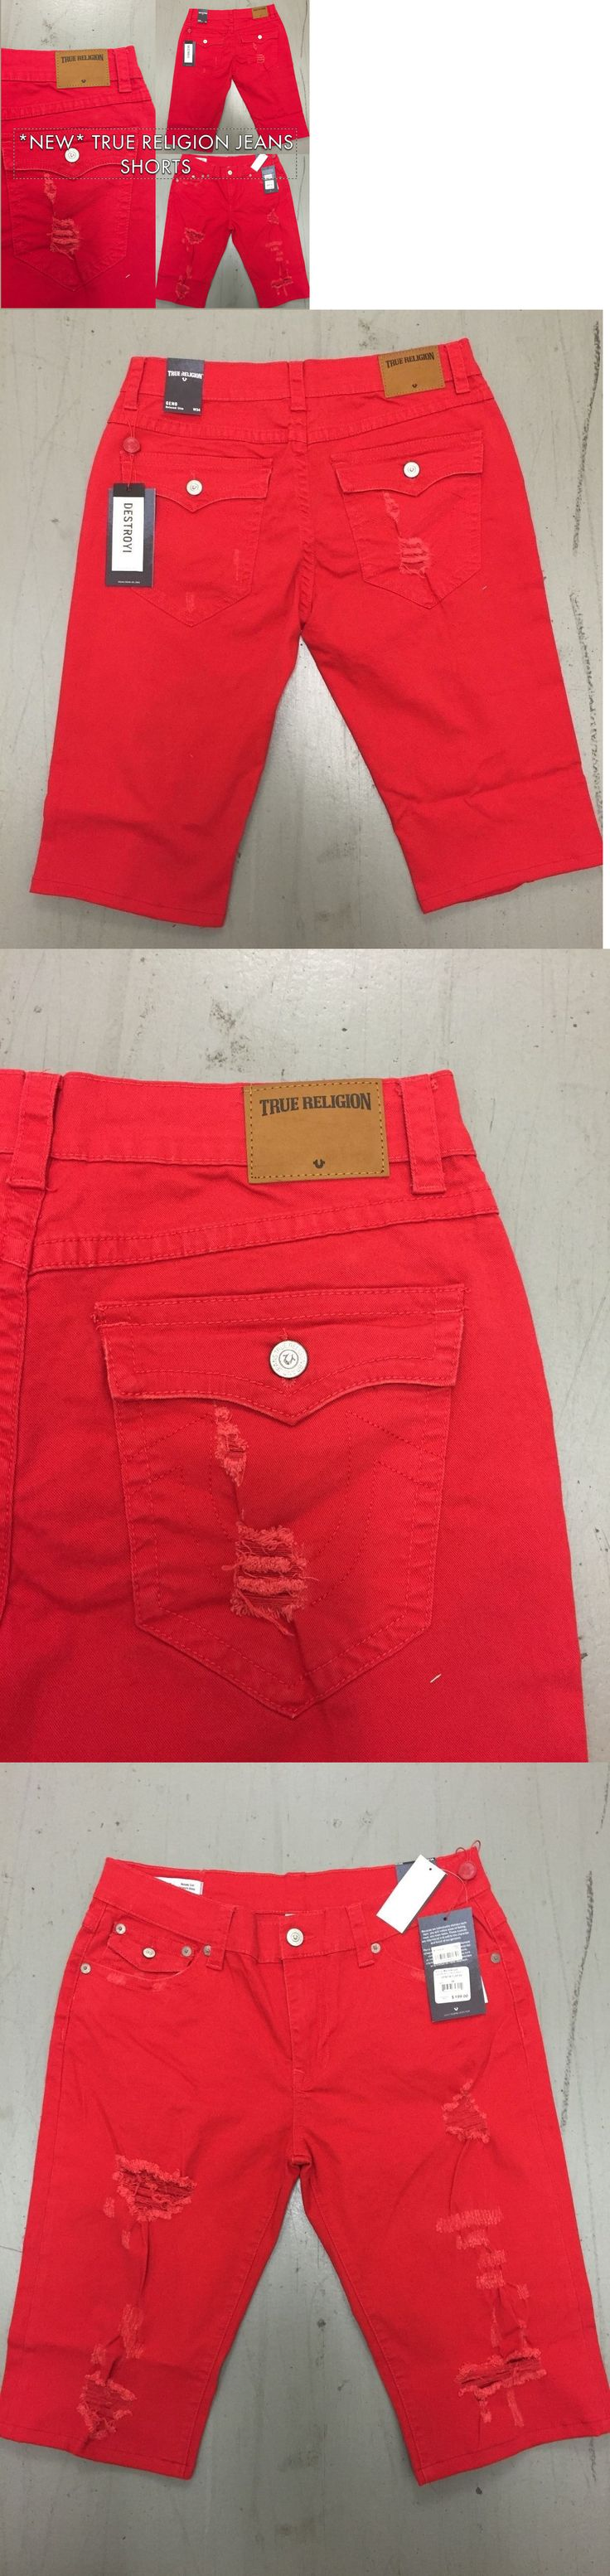 Shorts 15689: True Religion Jeans Geno Slim Fit Men S Jeans Shorts Usa Seller -> BUY IT NOW ONLY: $49.91 on eBay!